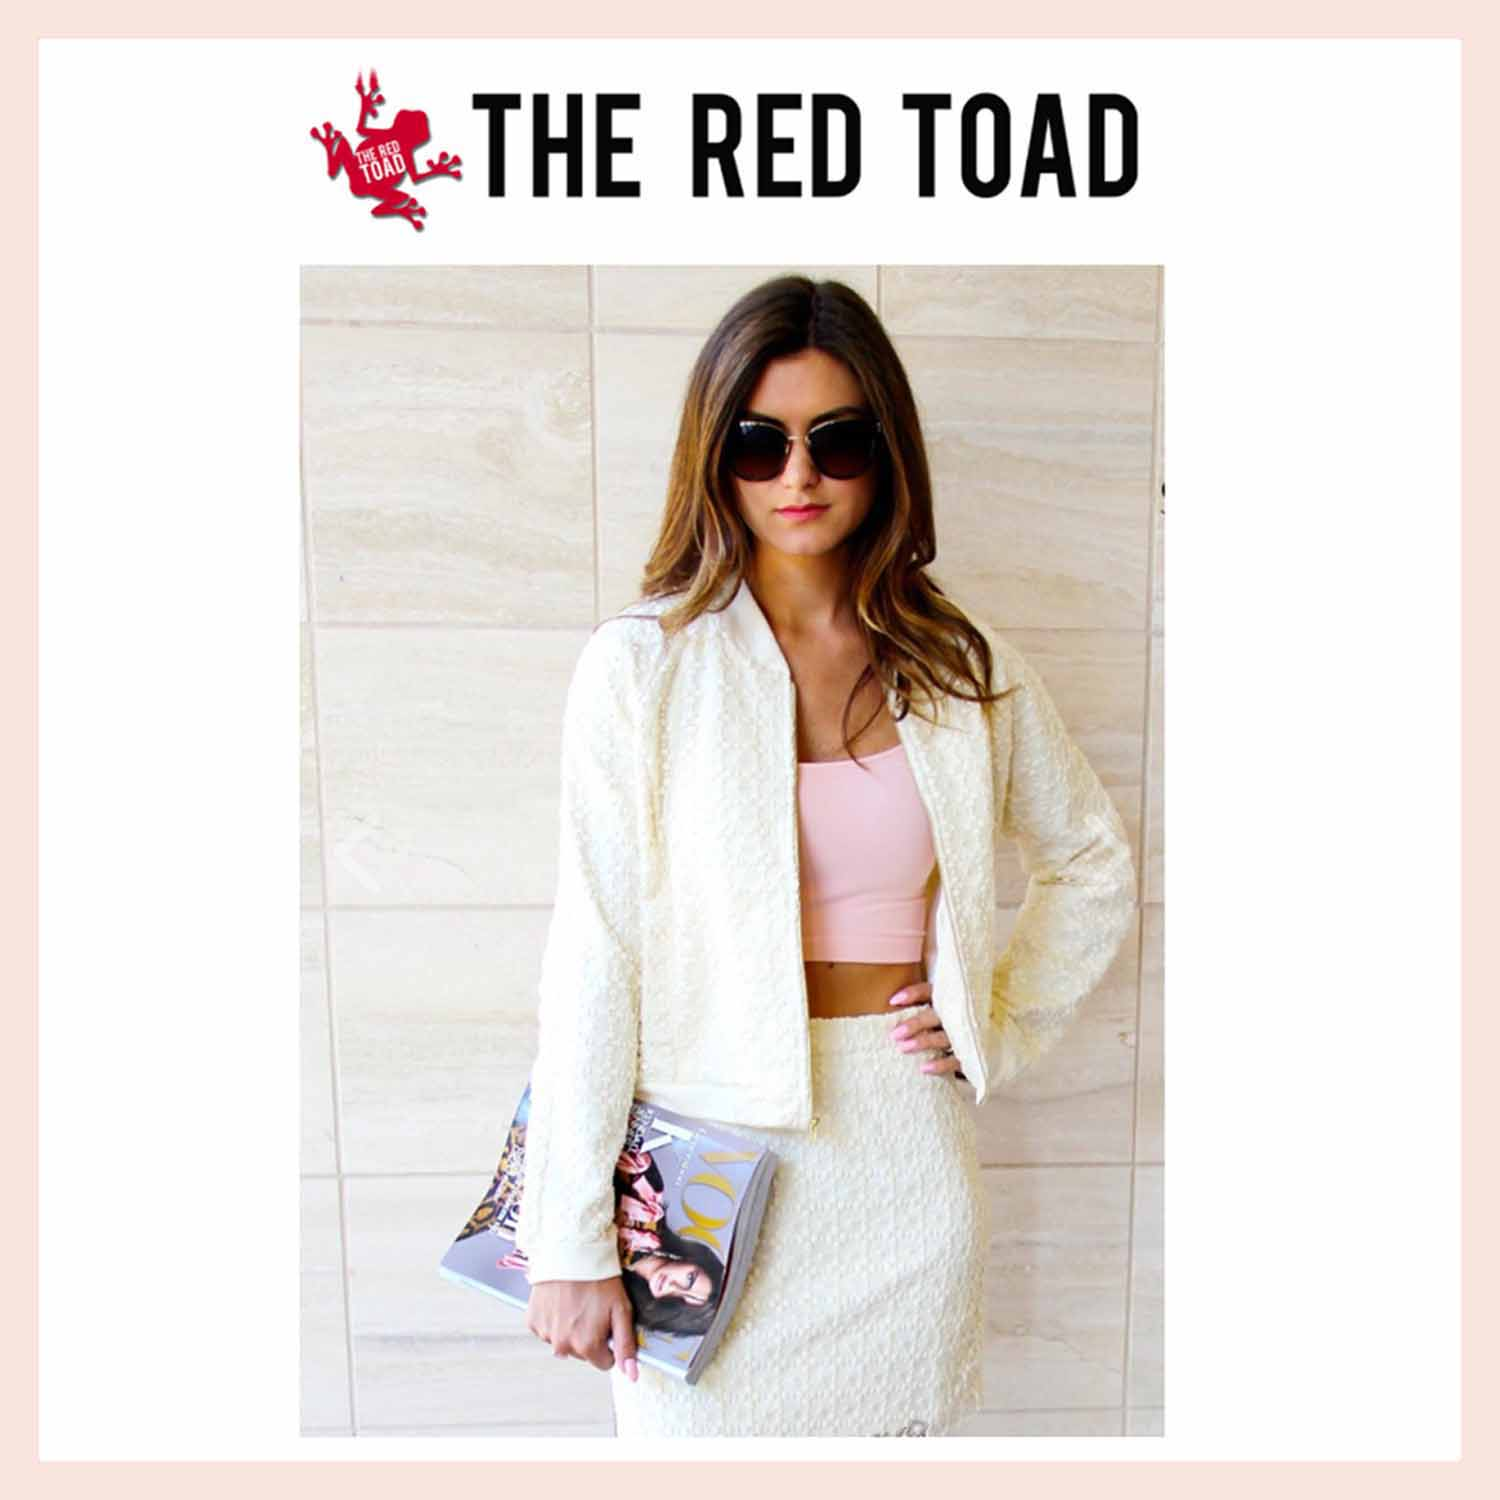 The Red Toad